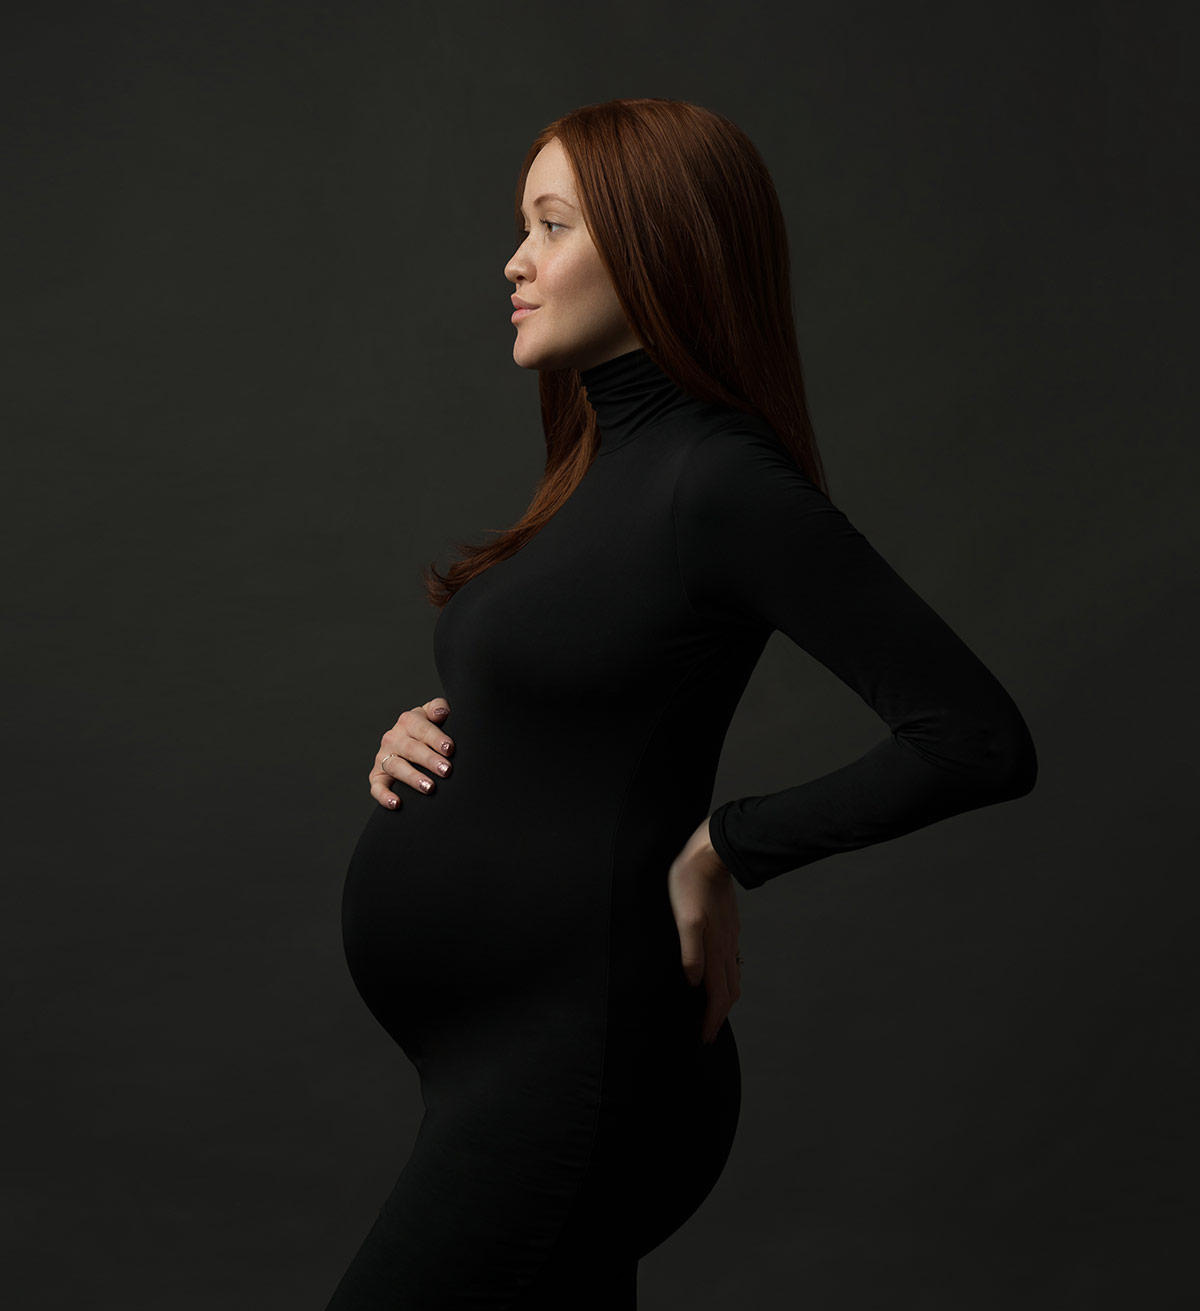 Black bodysuit on a pregnant woman with red hair